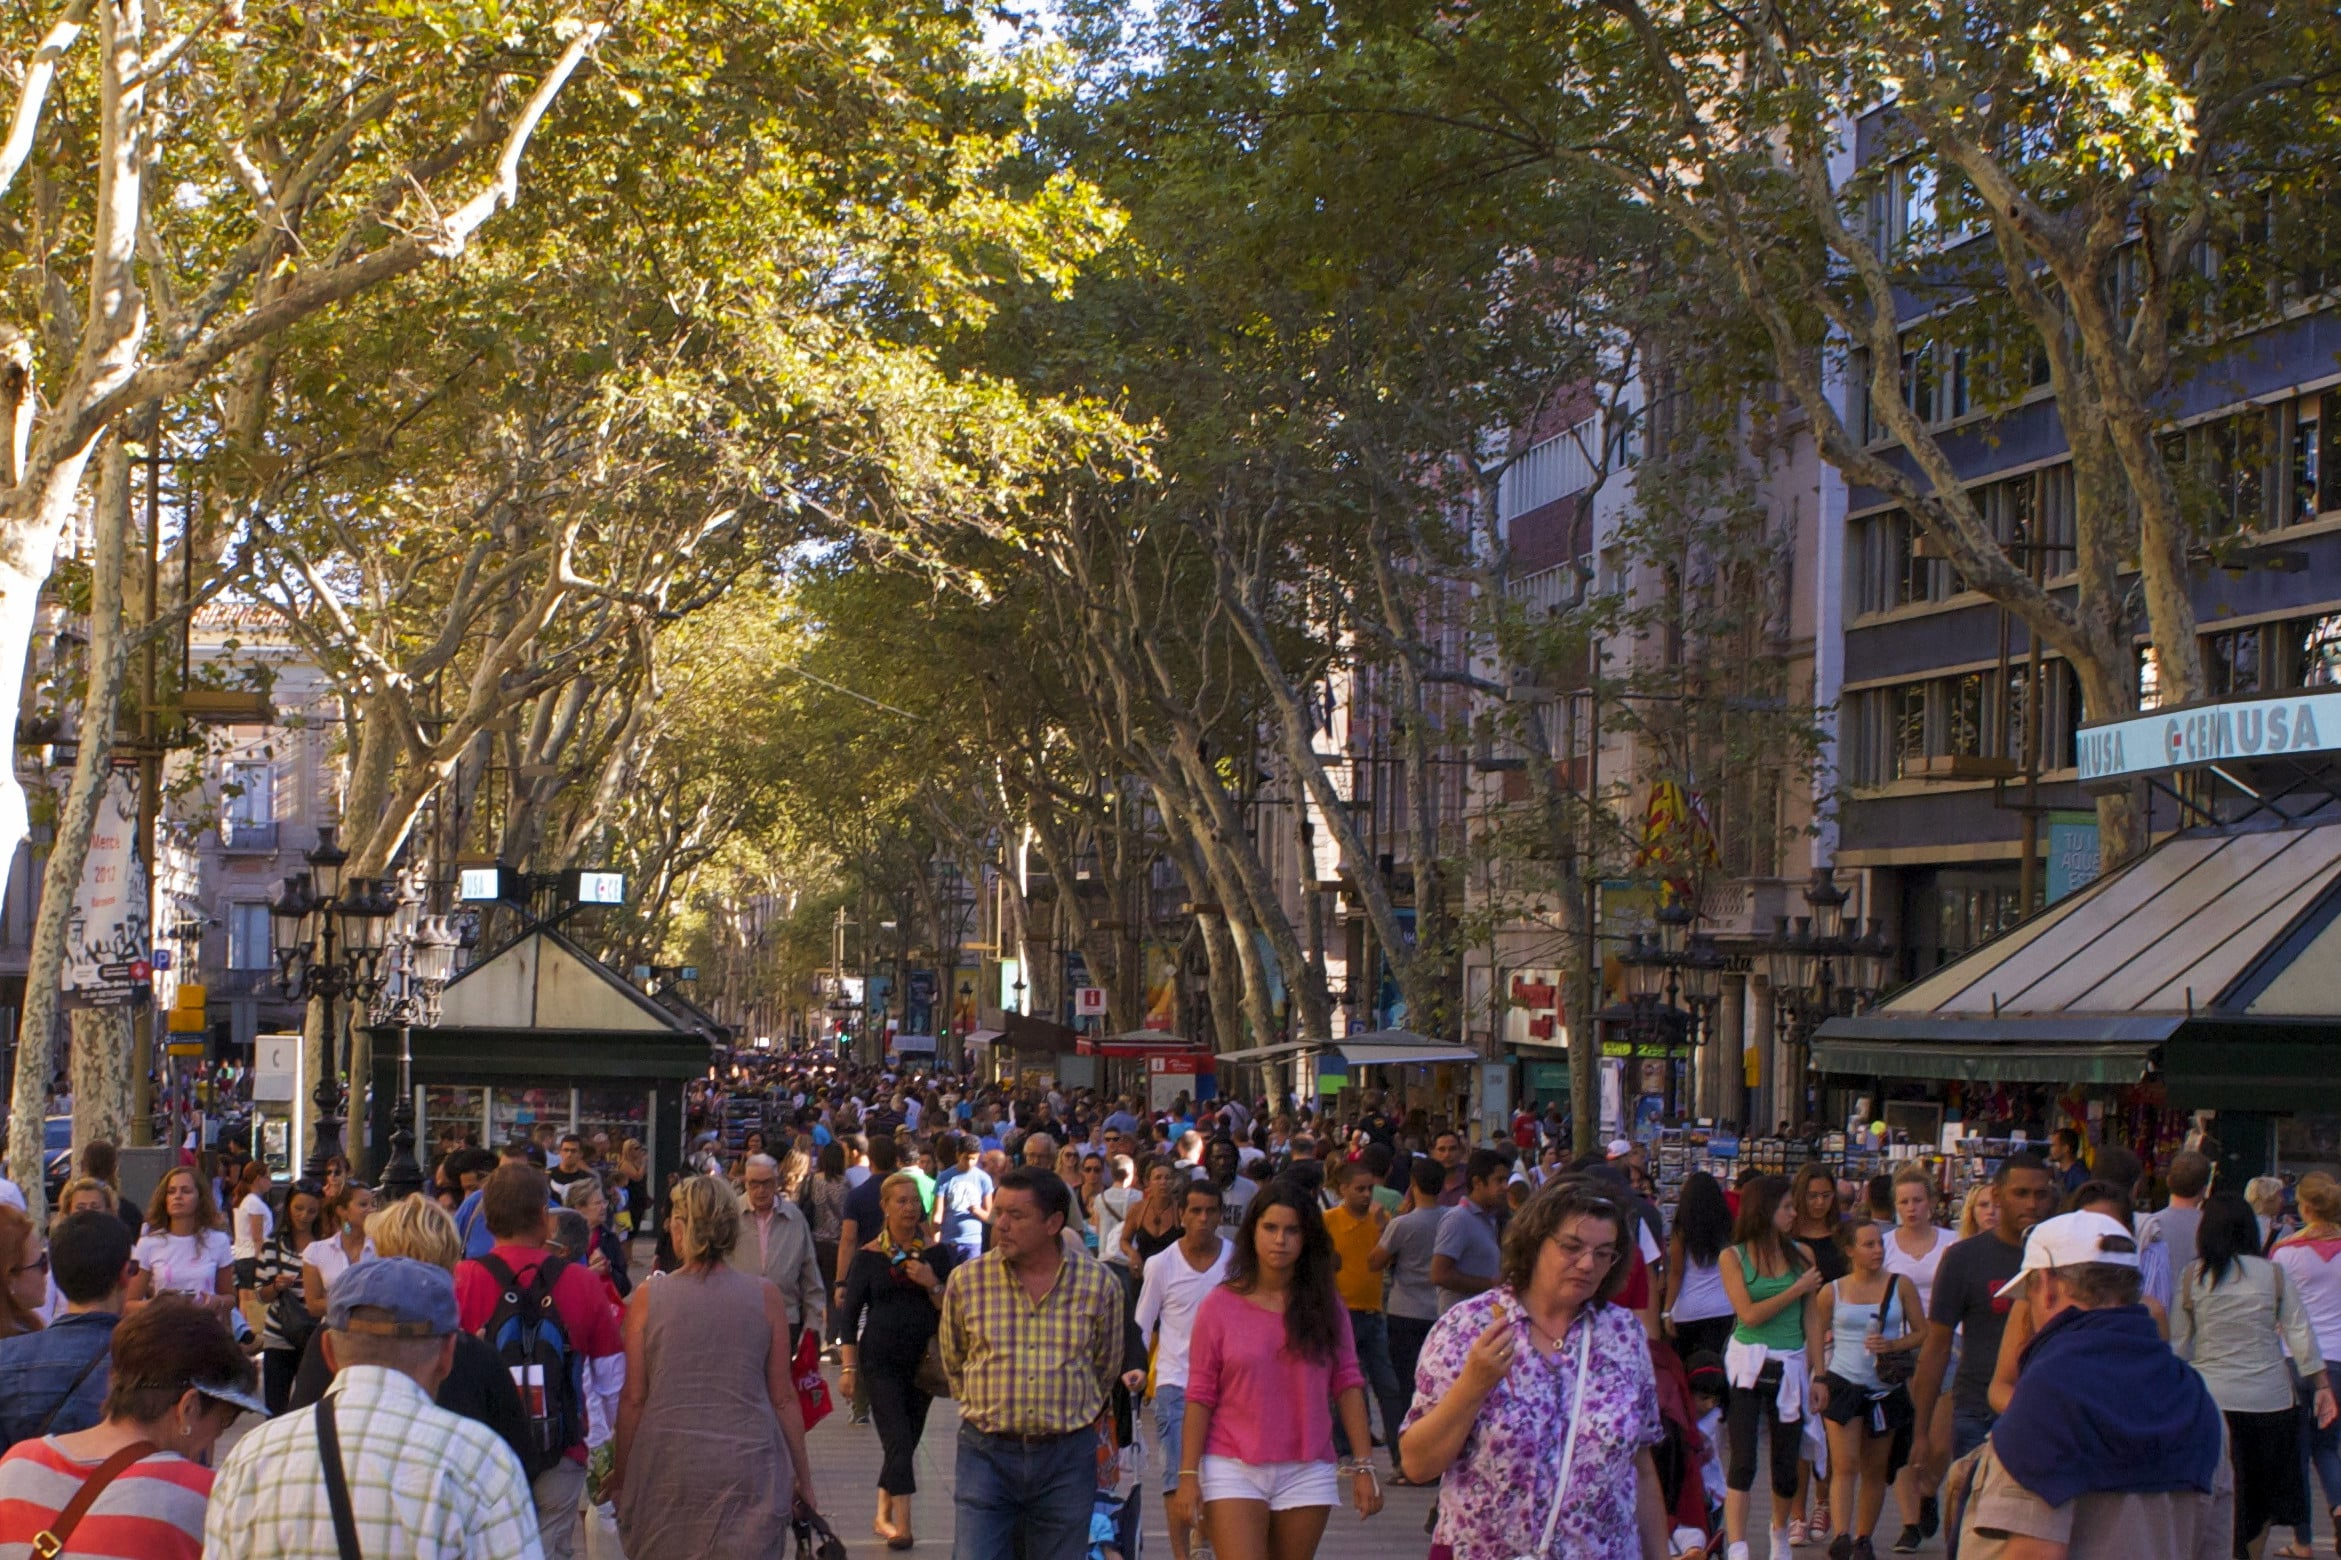 Barcelona travel tips - Las Ramblas is a key tourist area for shopping and restaurants, but also draw pickpockets so stay vigilant on your travels